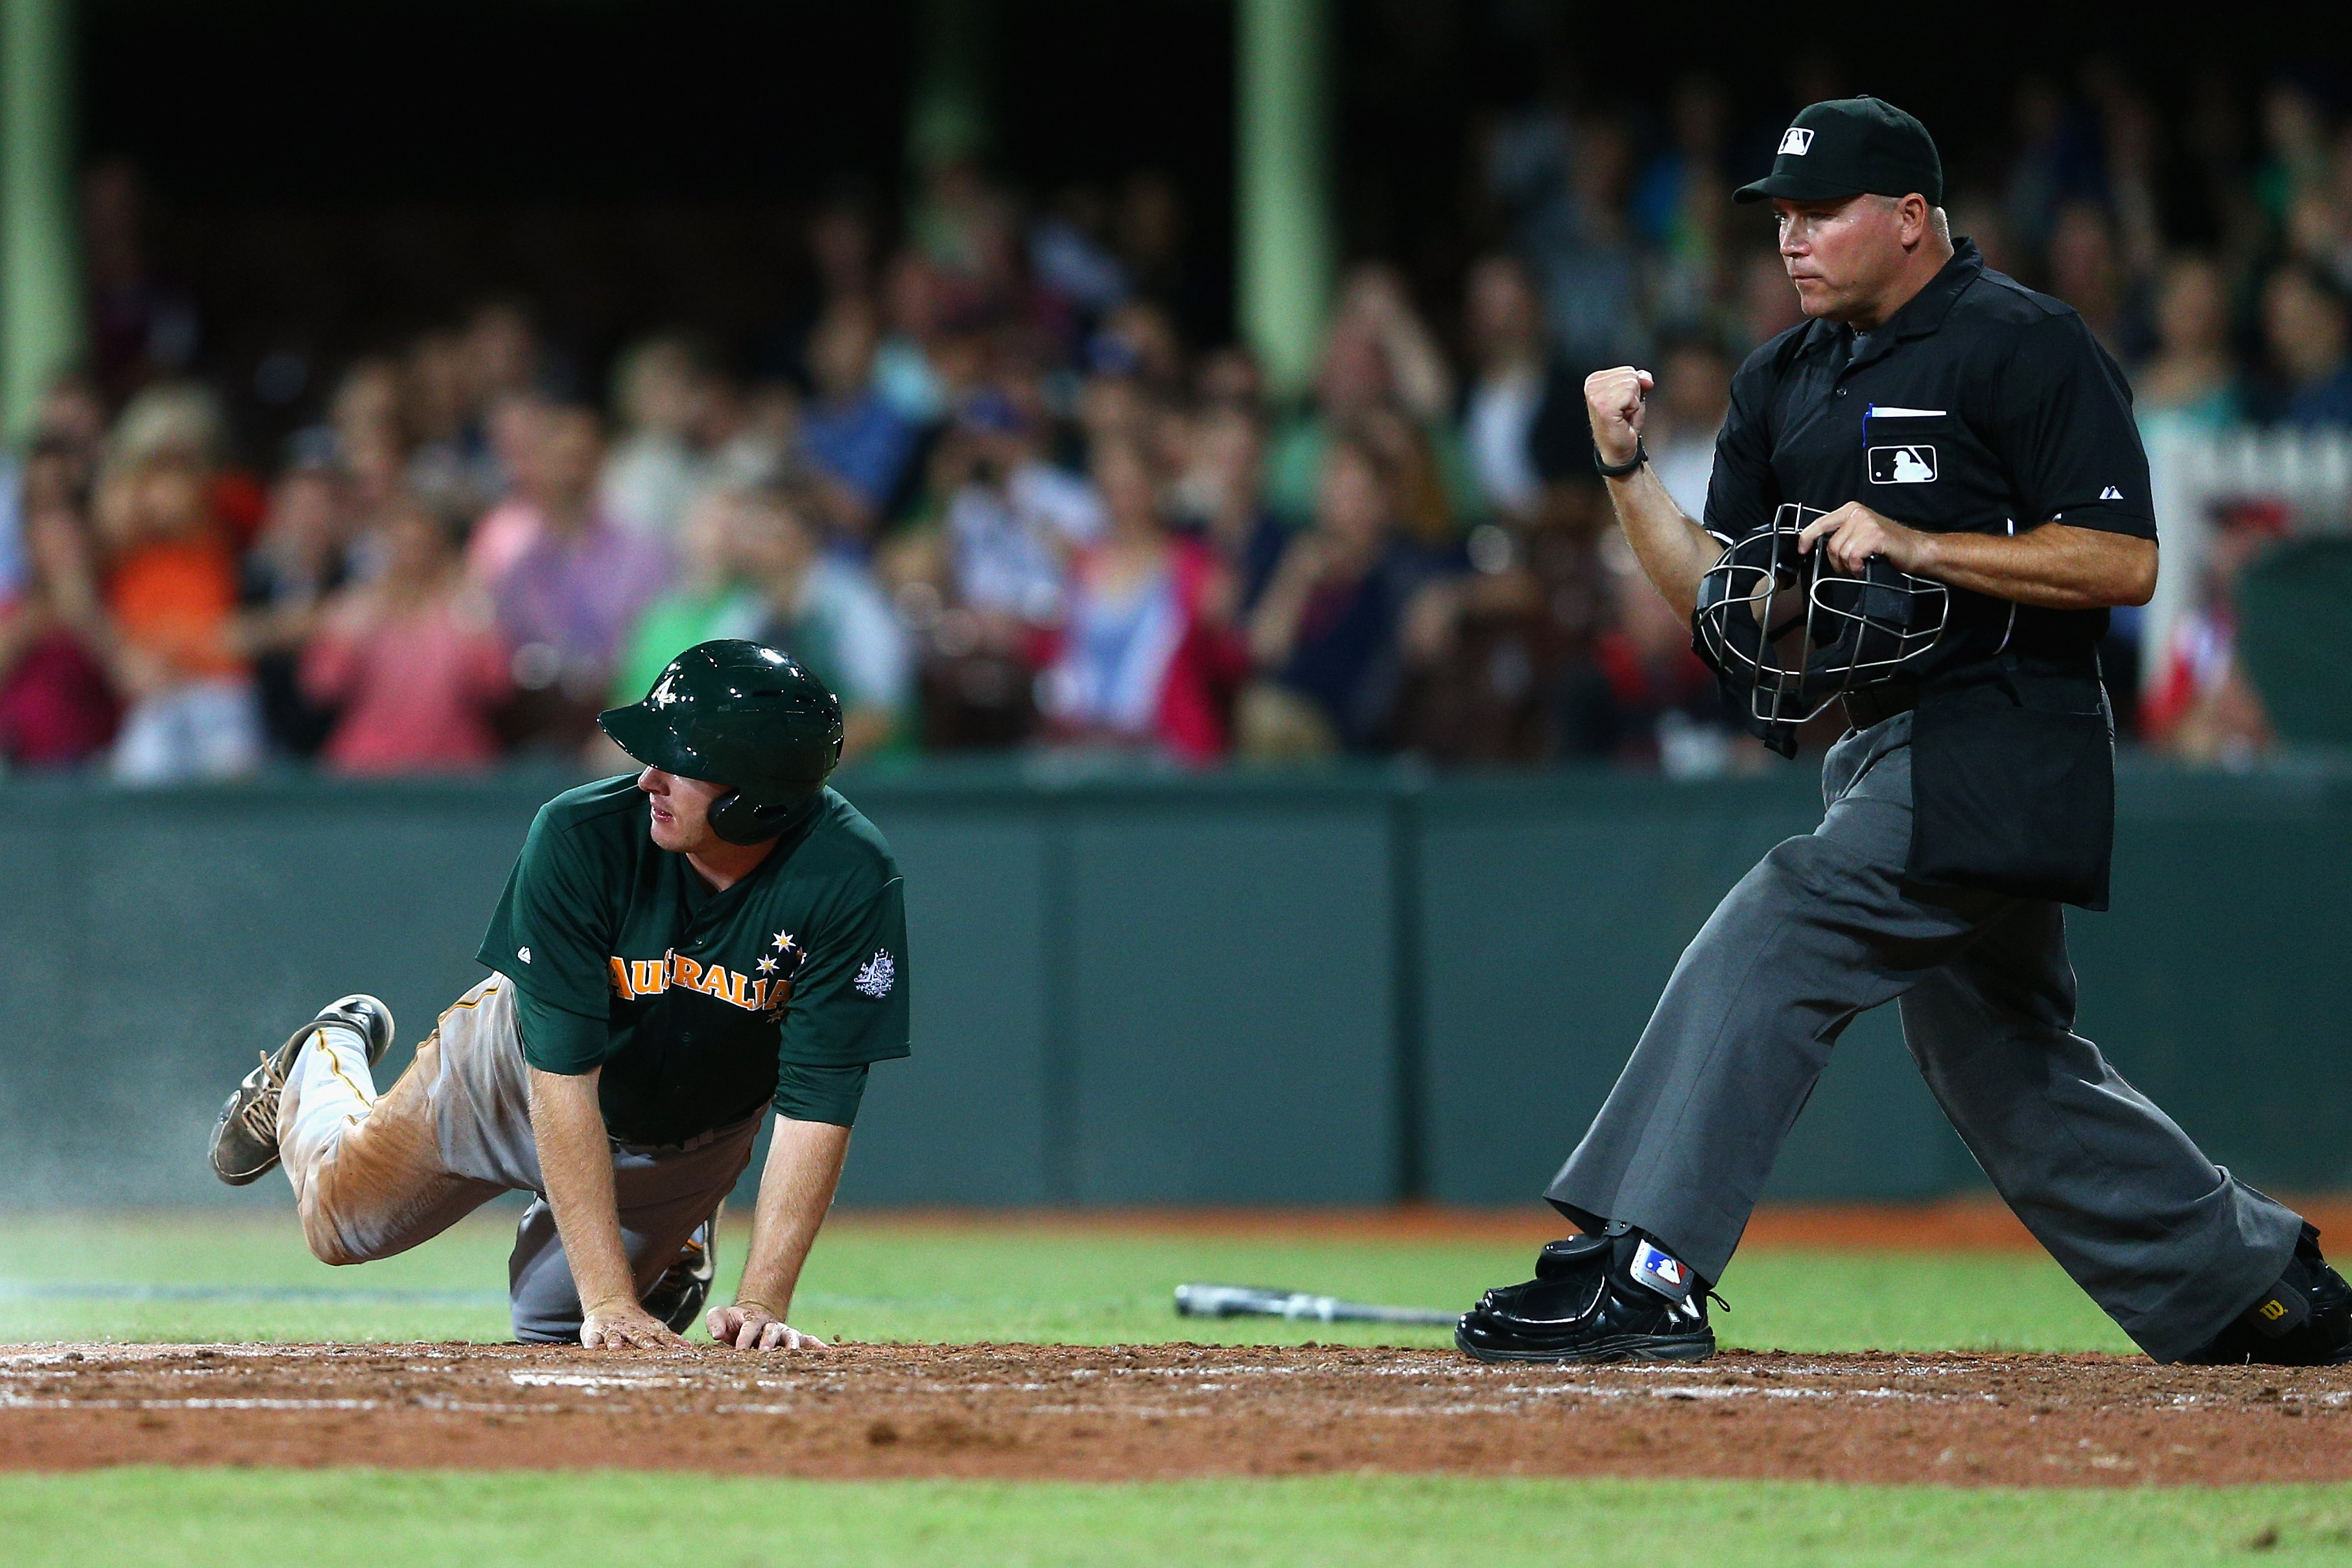 The Australian national team, who played exhibition games against the Diamondbacks and Dodgers in 2014, hosts the first of four WBC qualifiers.